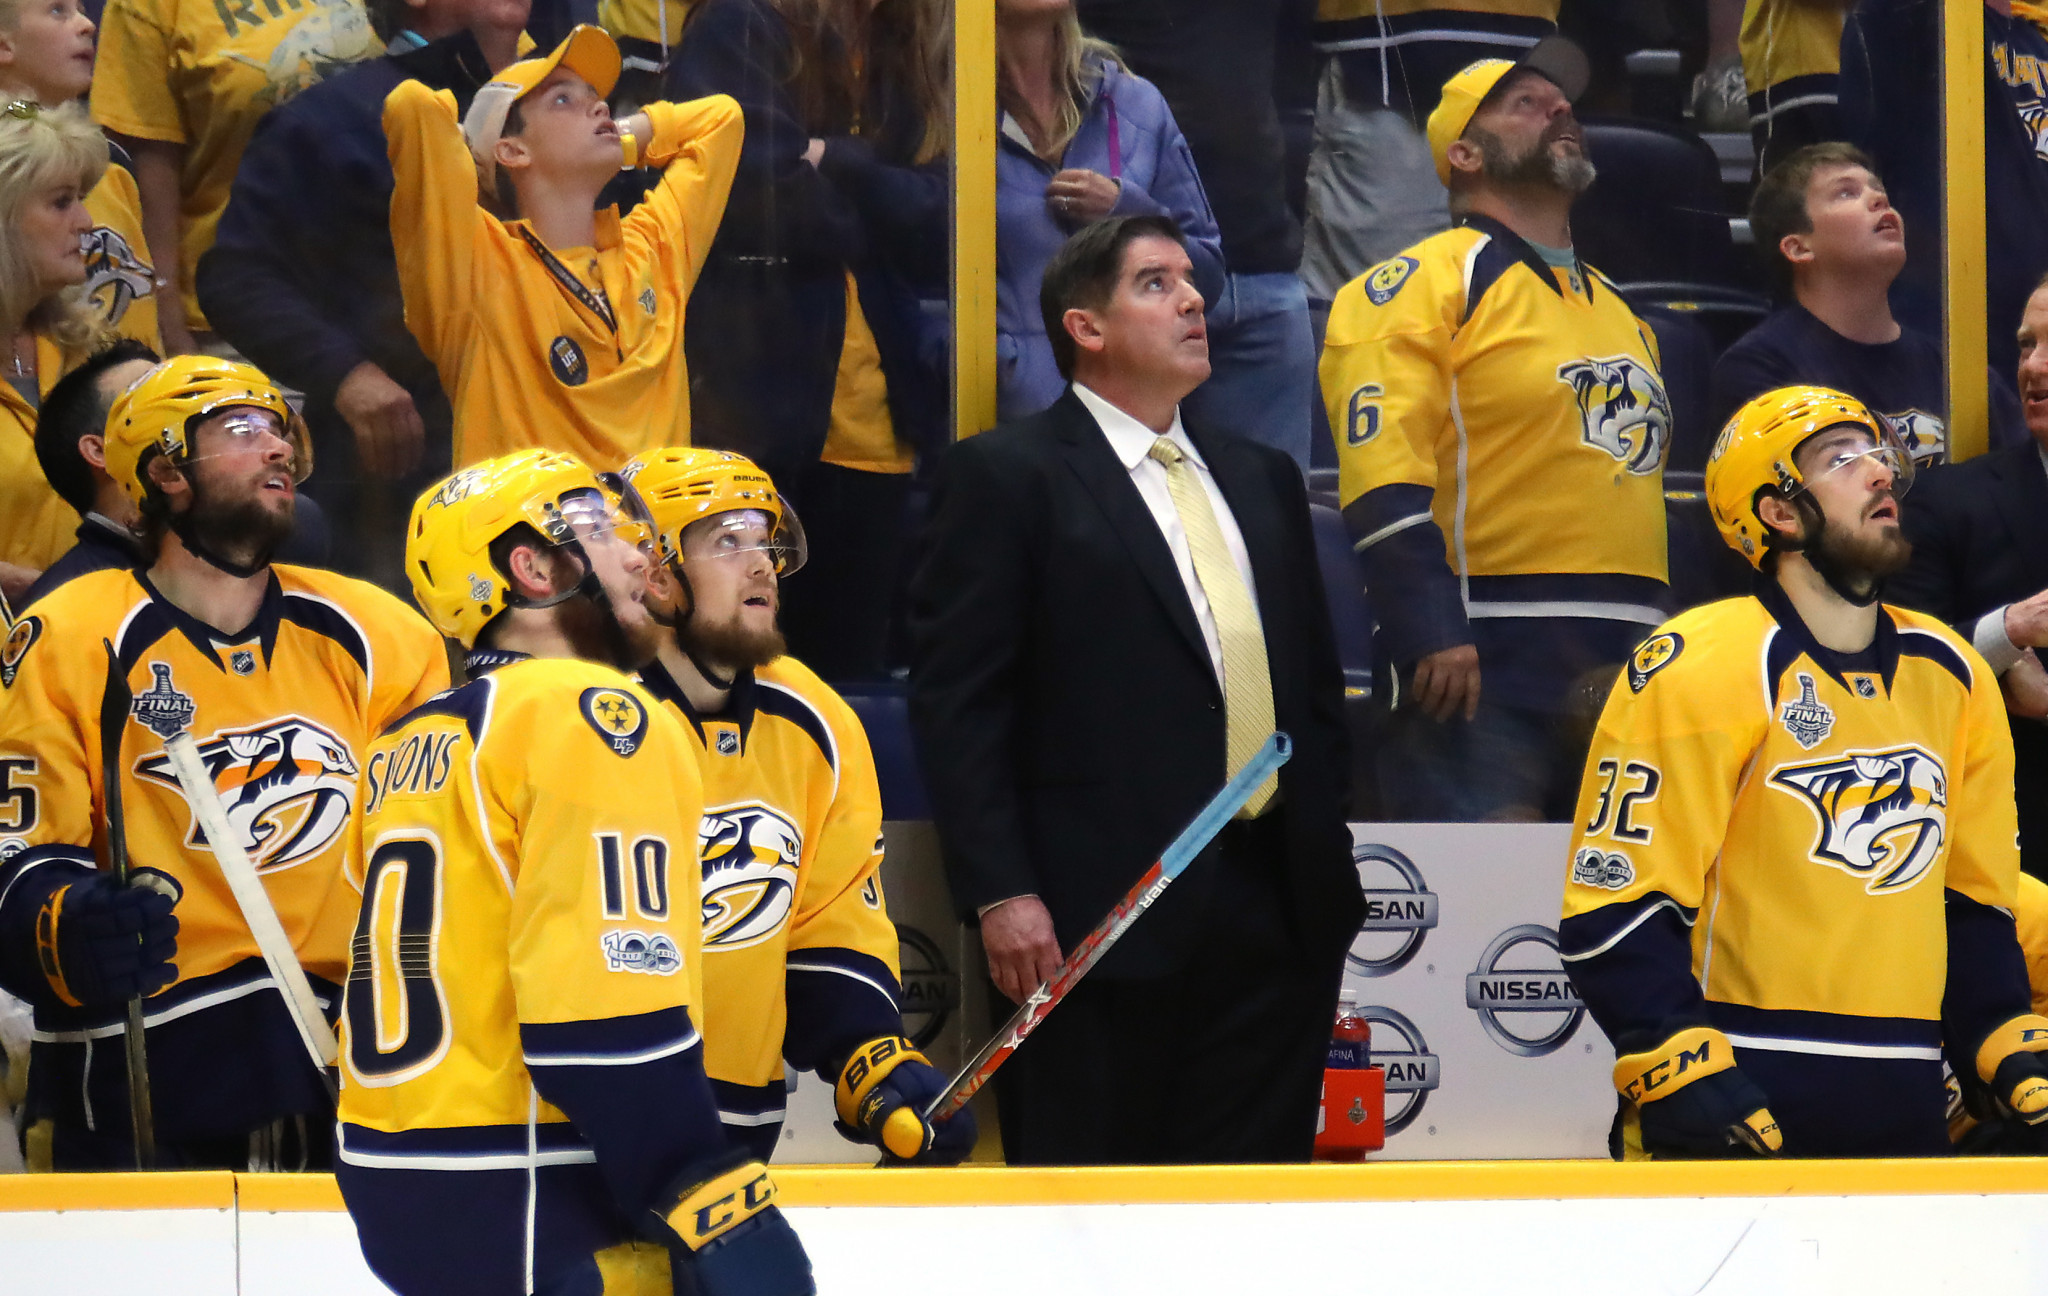 Former US Olympic ice hockey coach Peter Laviolette, in suit, is among graduates of Westfield State University ©Getty Images